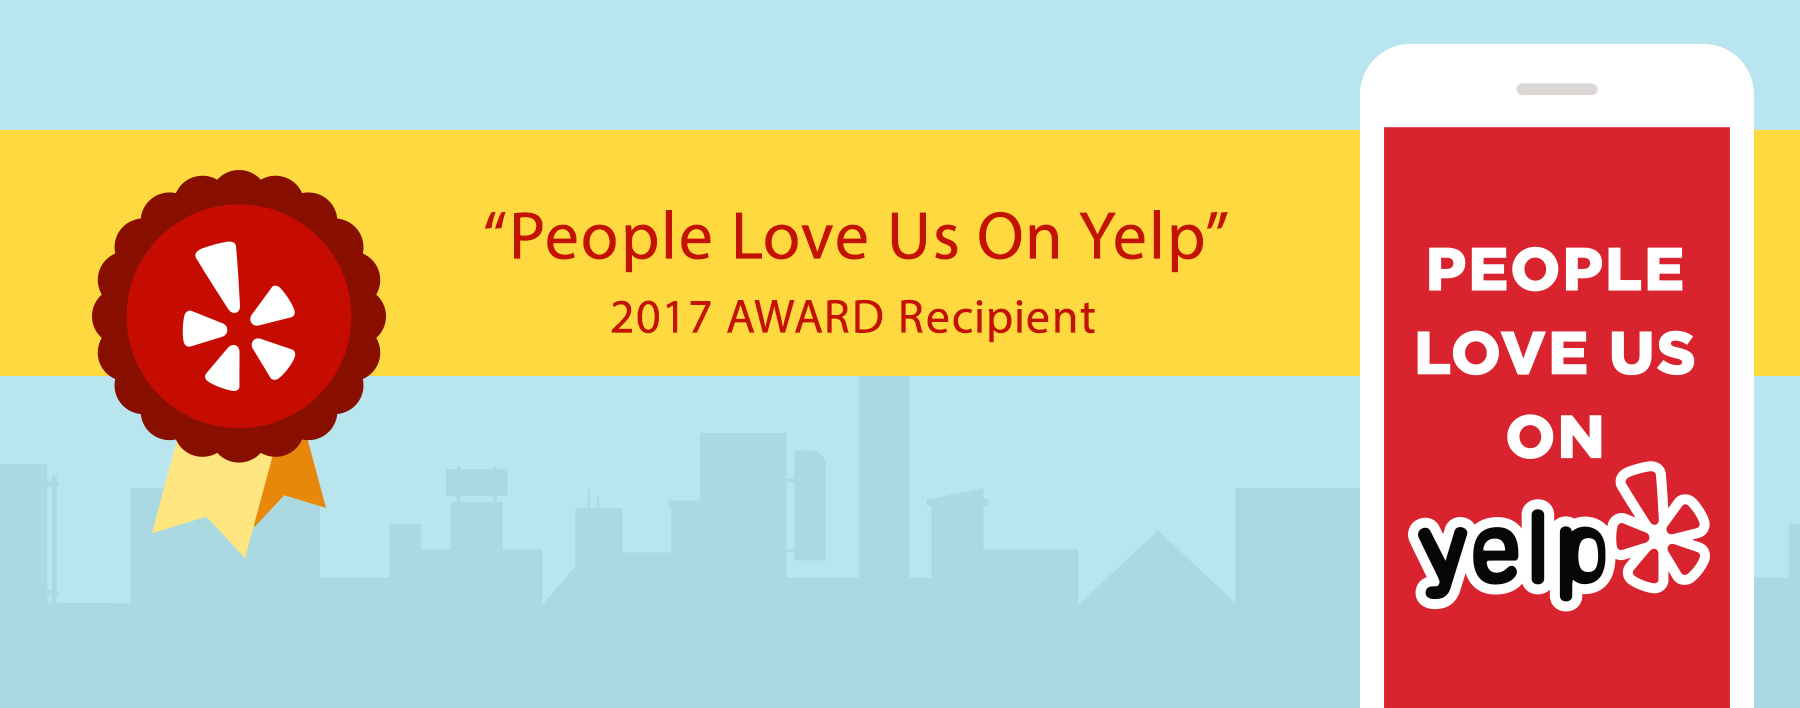 yelp-people love us award